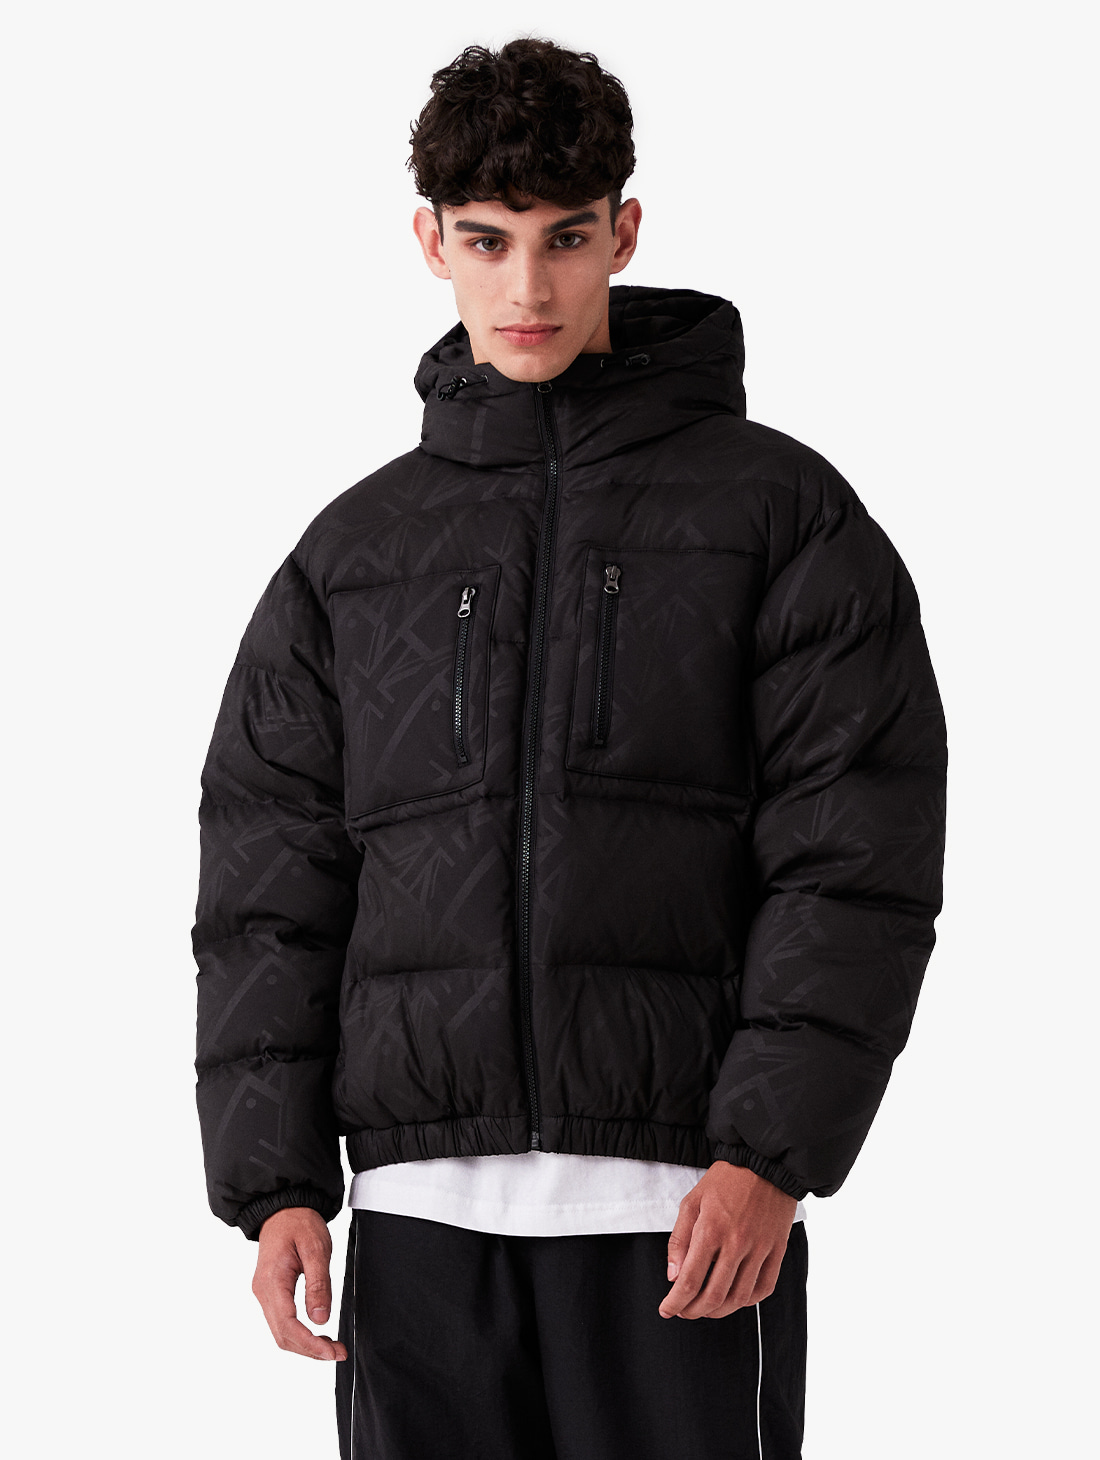 GOALSTUDIO [PRE-ORDER 10% OFF] WWFC EMBO DOWN JACKET